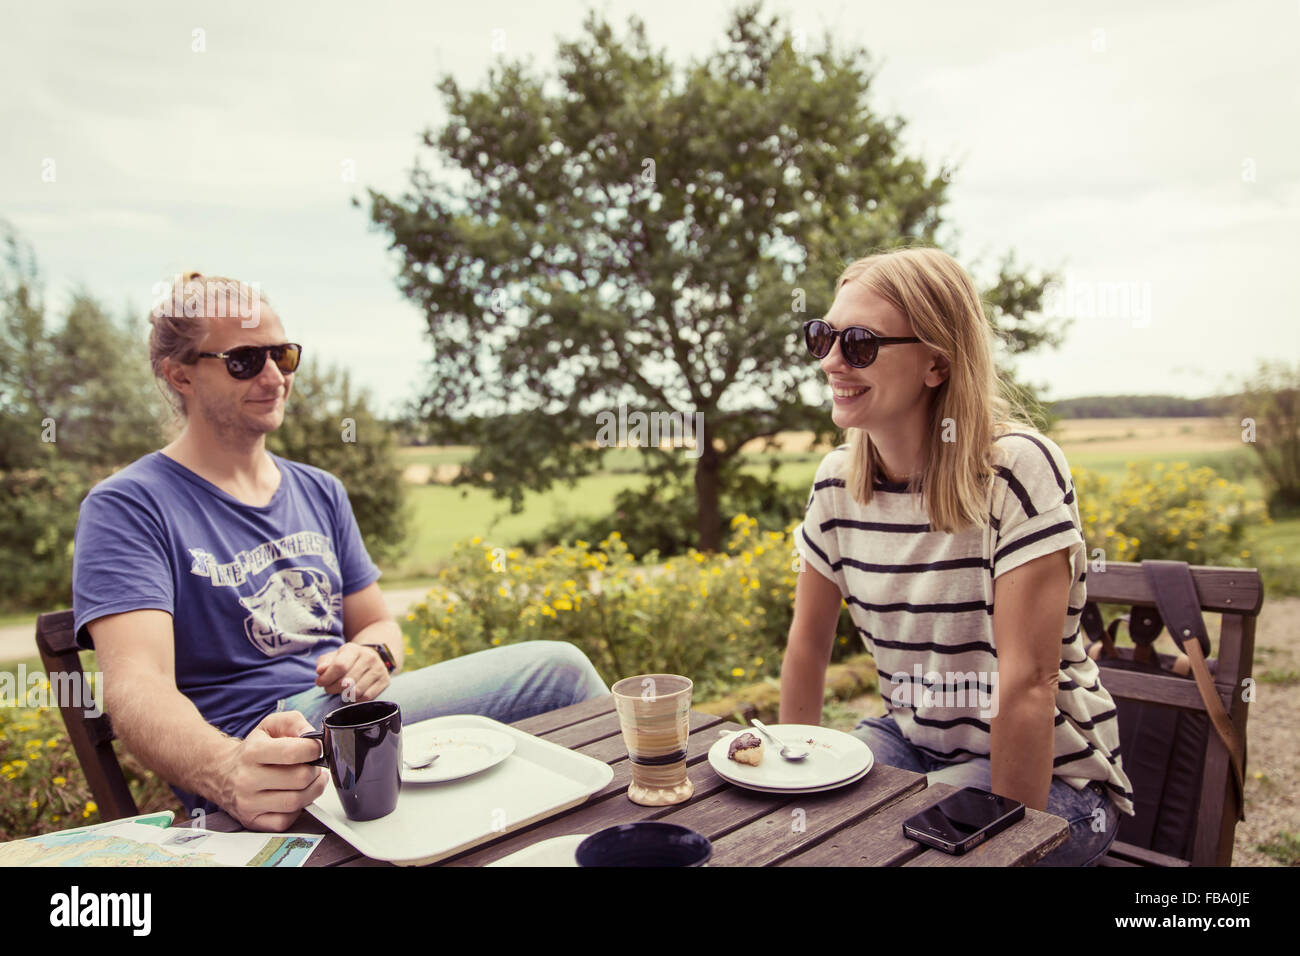 Sweden, Skane, Ostra Goinge, Couple relaxing at table - Stock Image